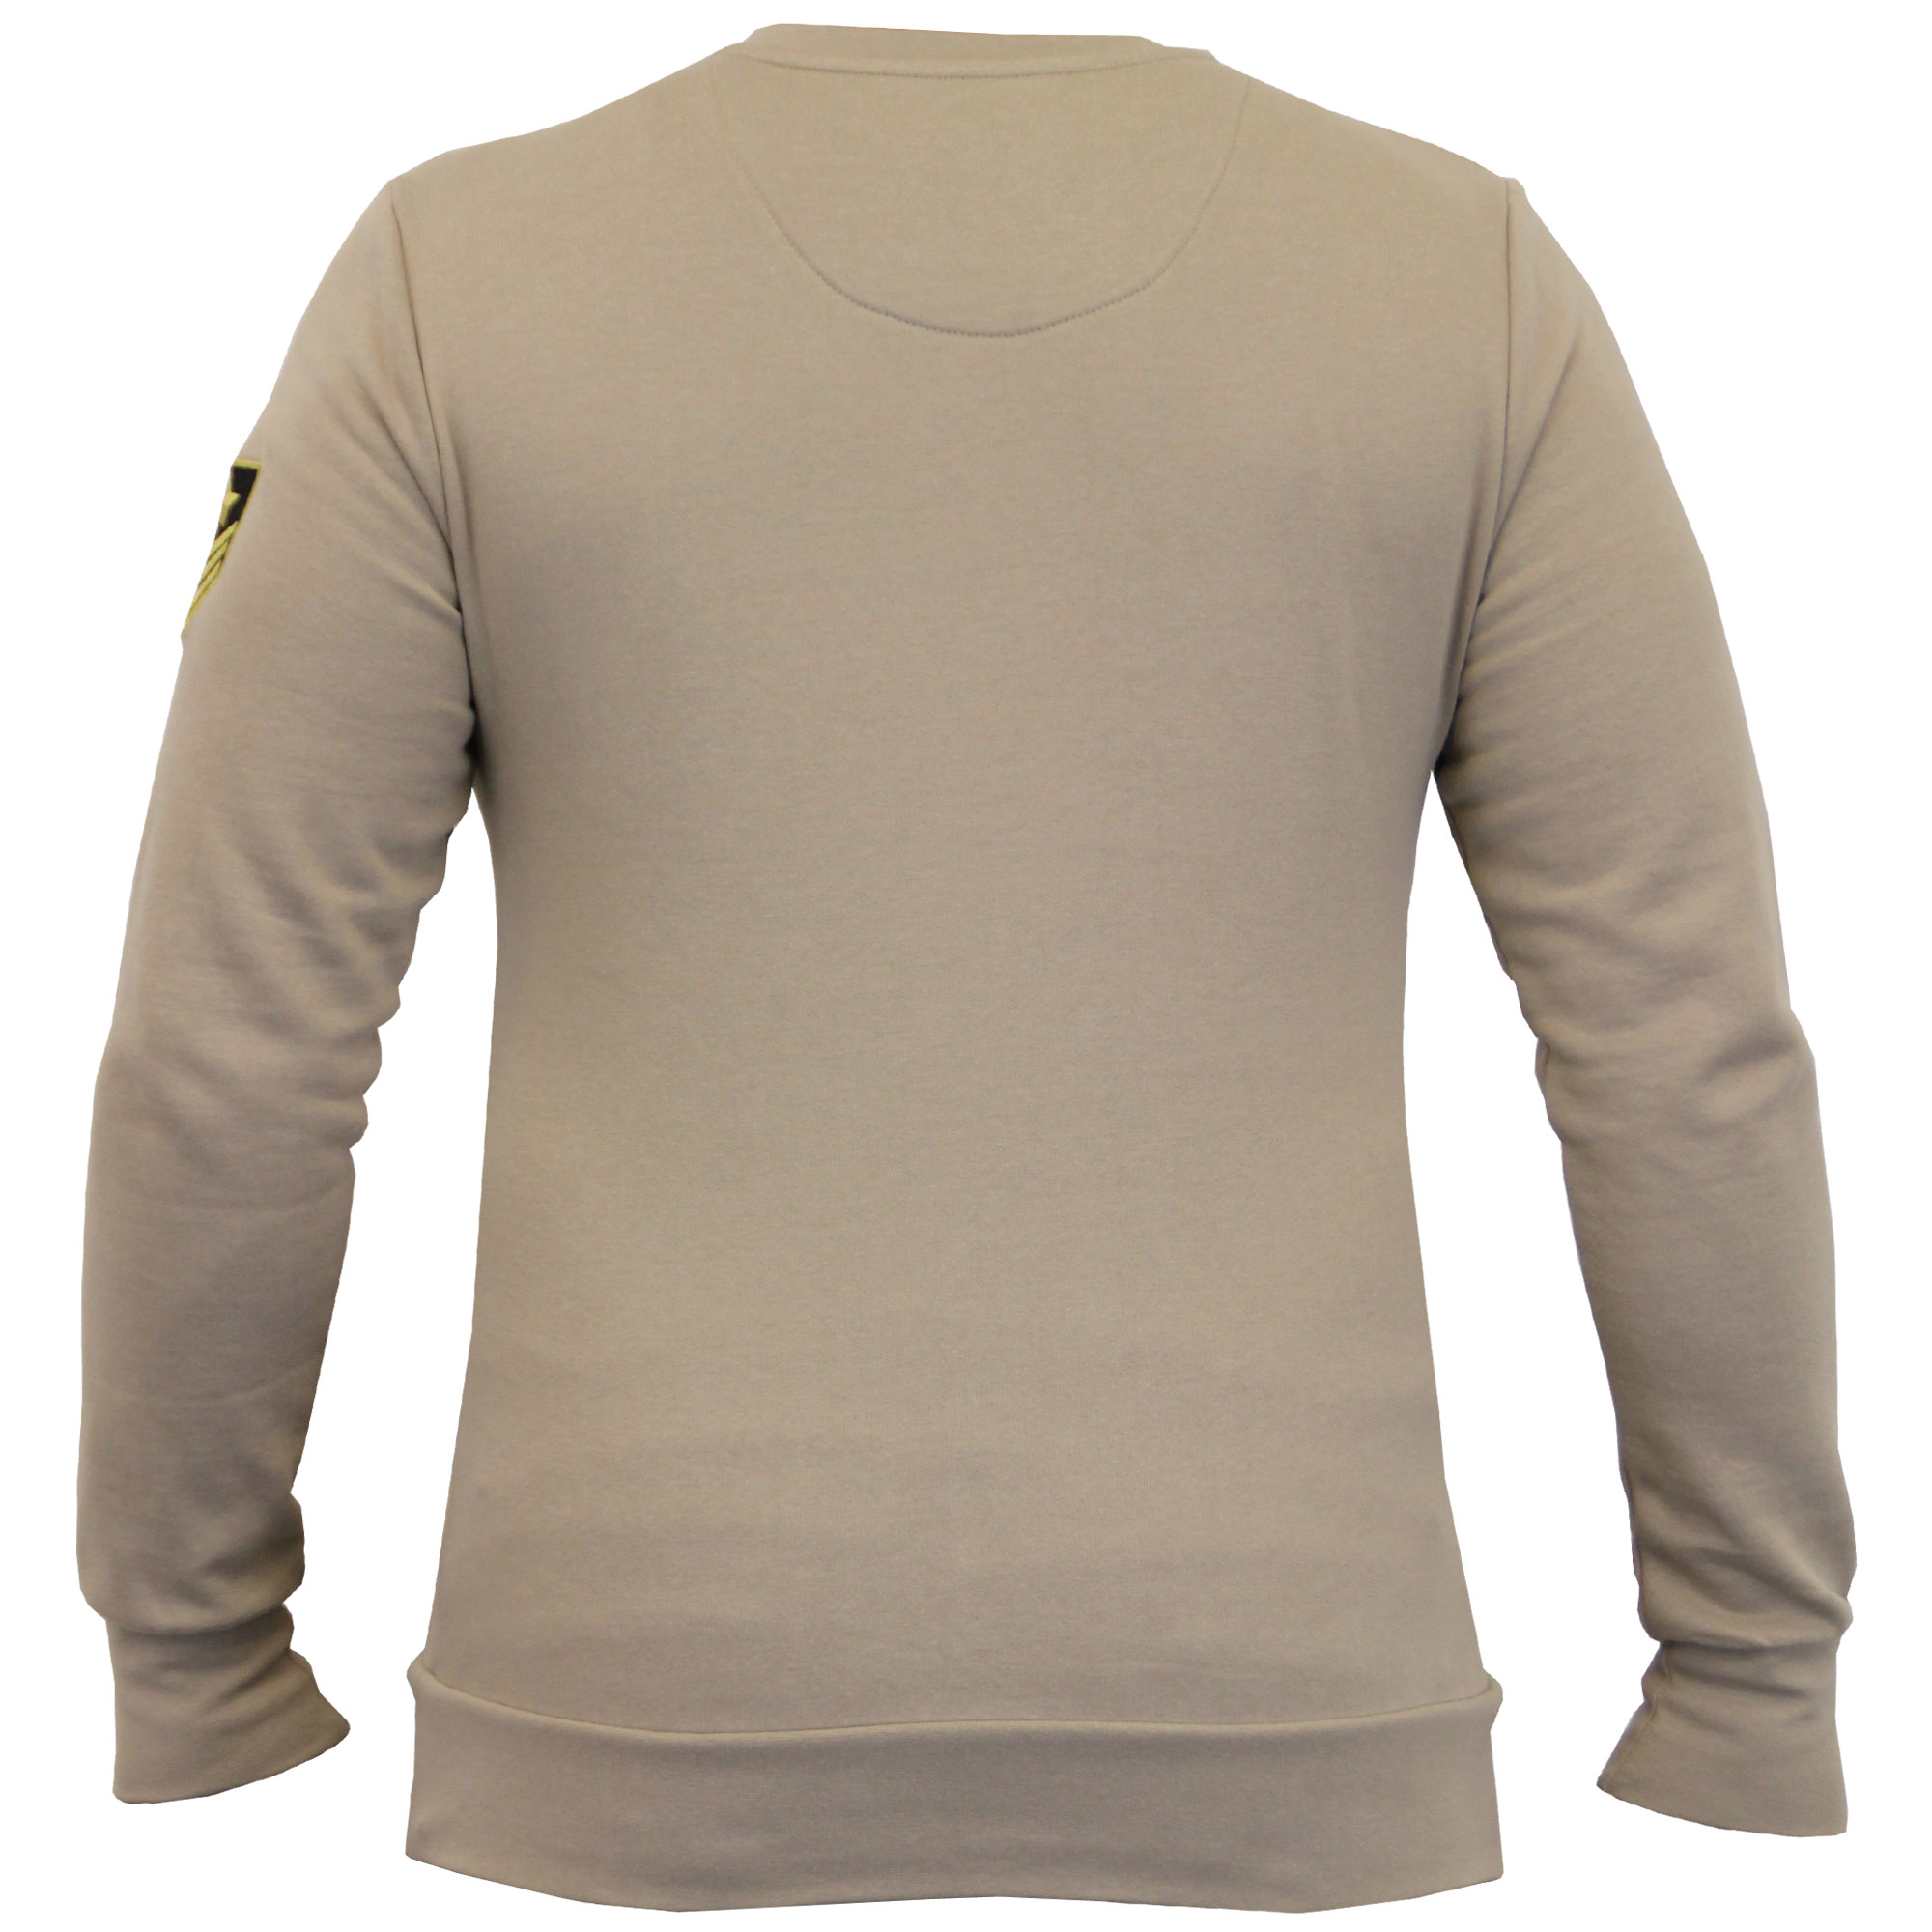 Mens-Sweatshirt-Brave-Soul-Military-Badge-Pullover-Top-Fleece-Lined-Winter-New thumbnail 4